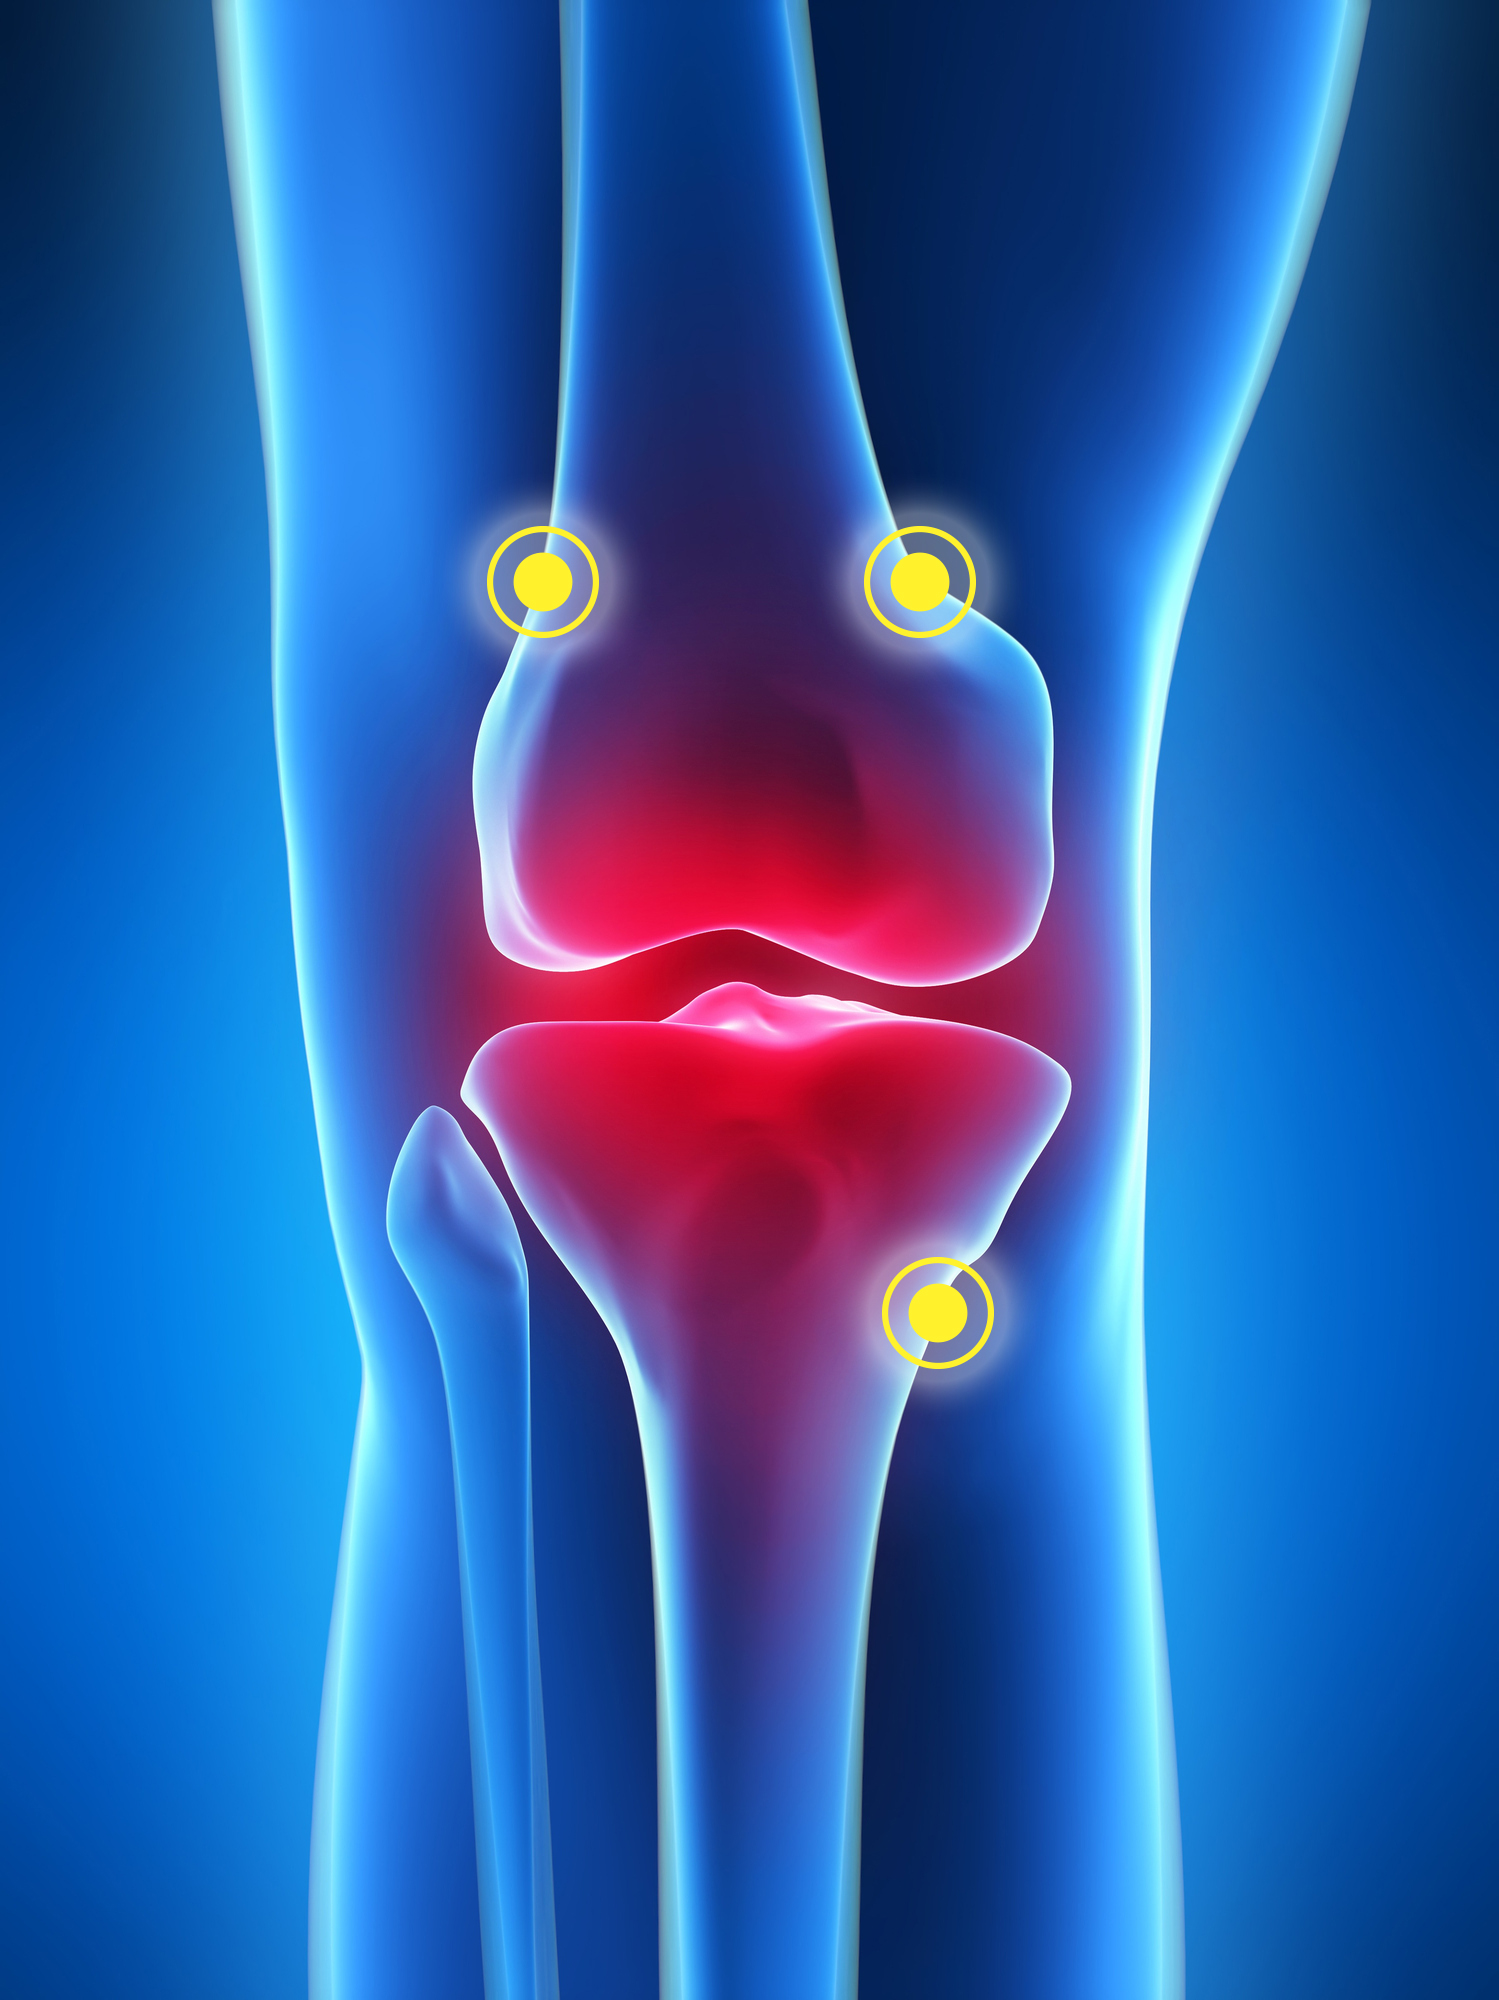 Fda Clears Radiofrequency Treatment For Osteoarthritis